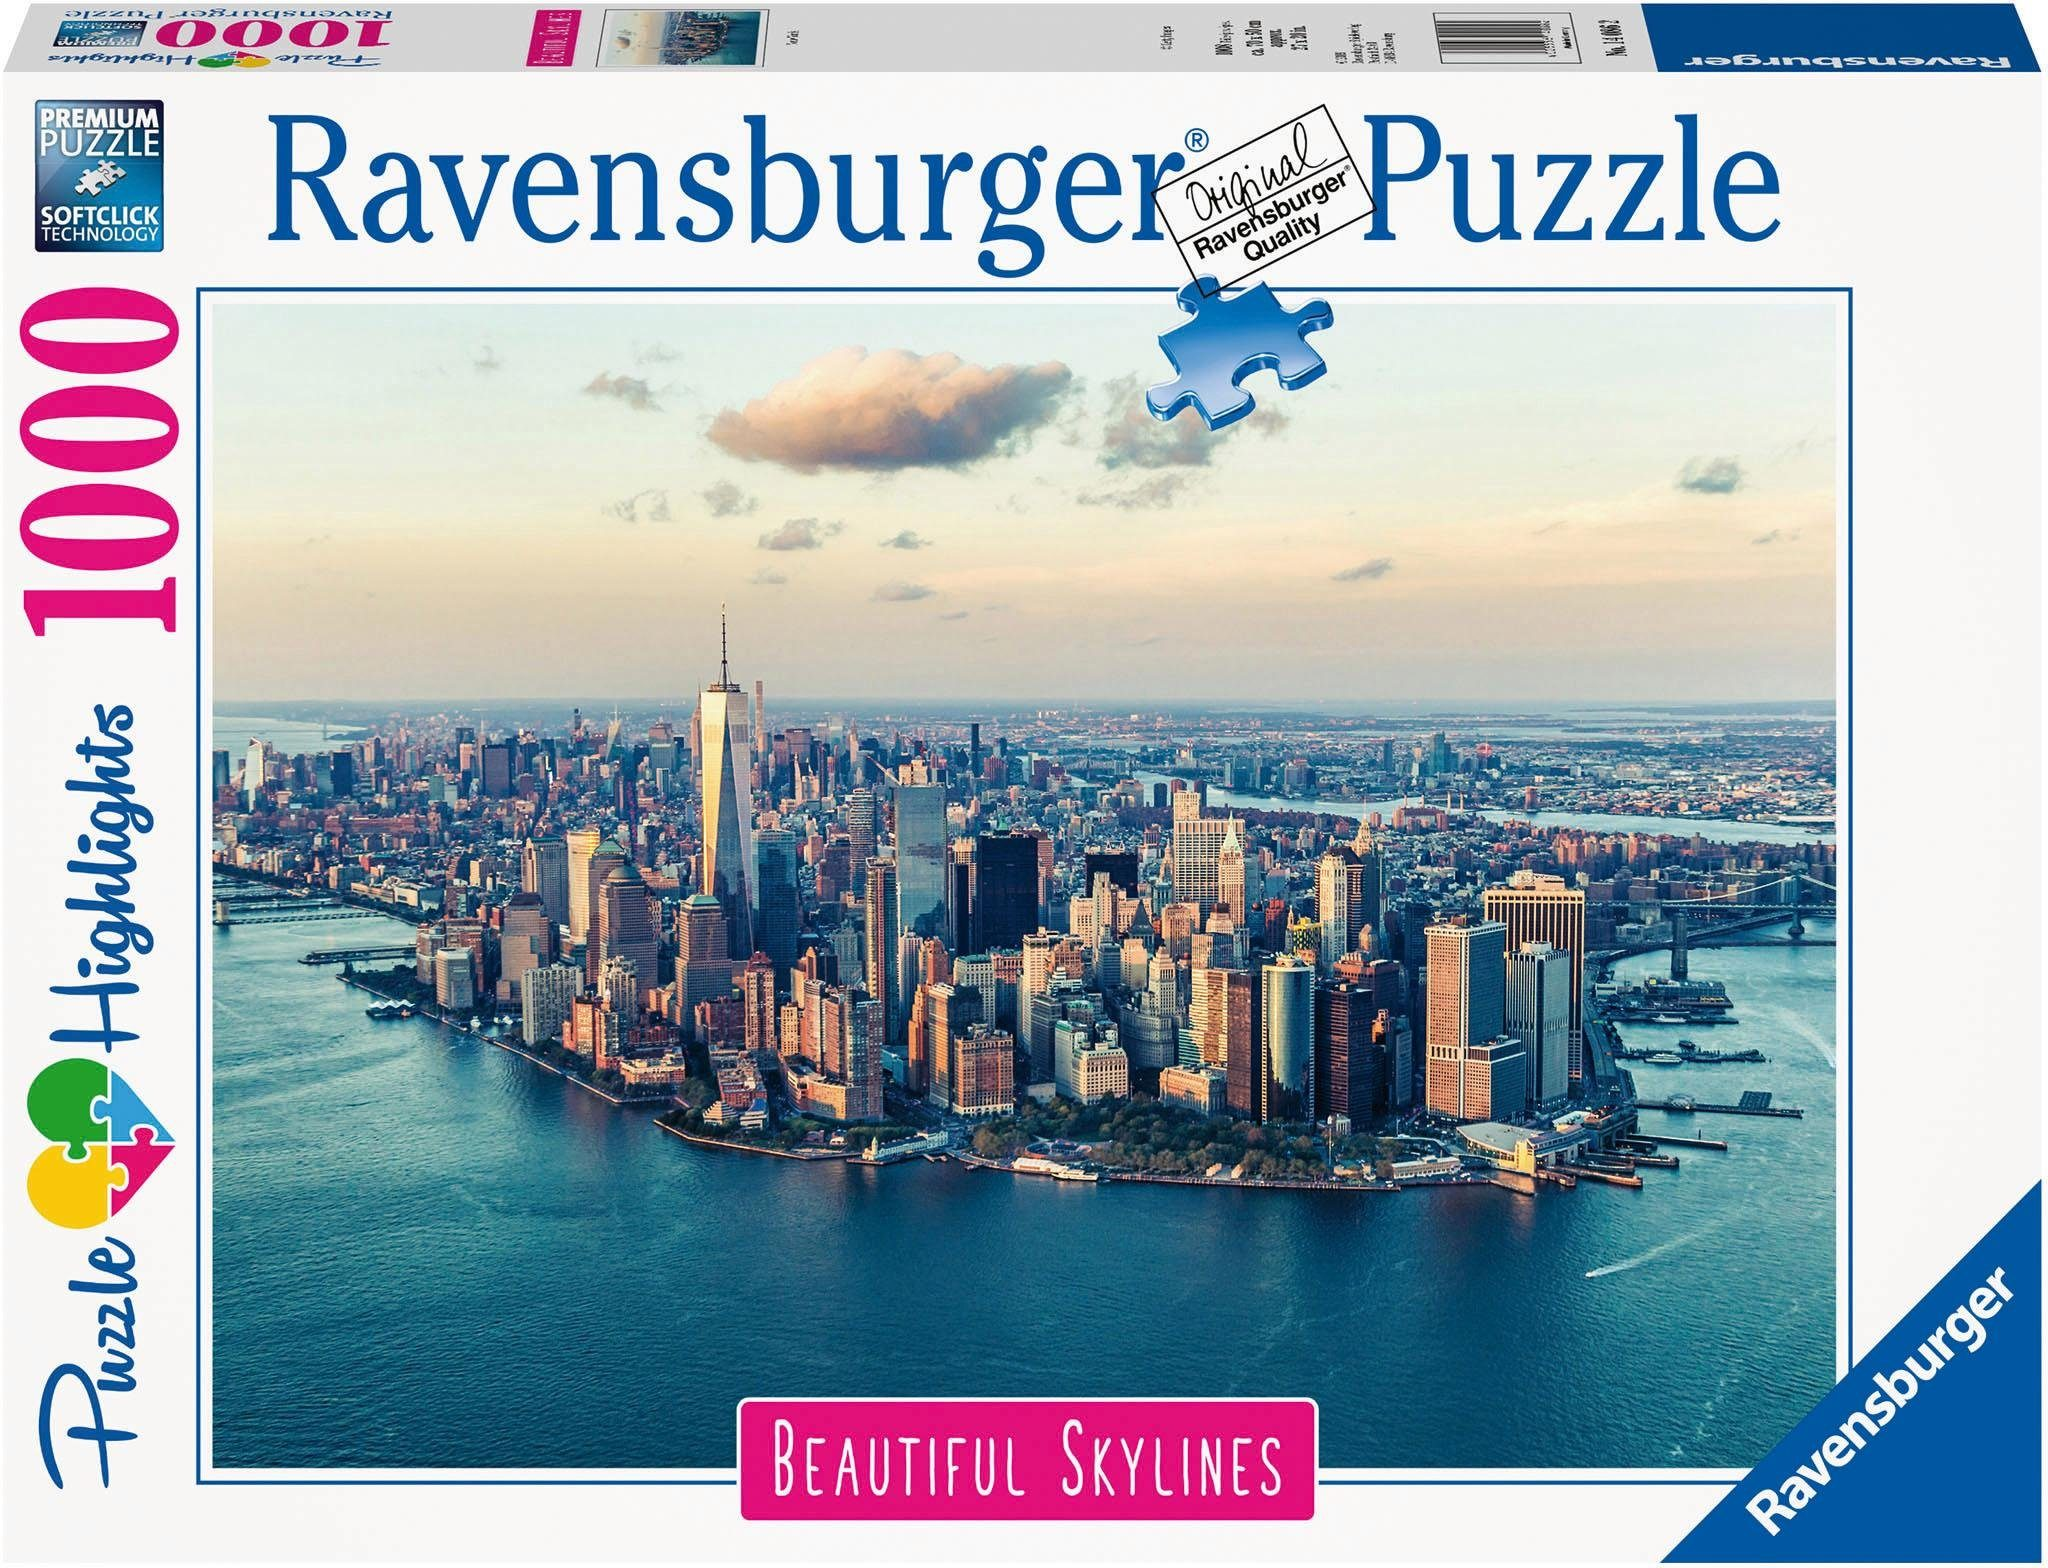 Küche Burger Qualität Ravensburger Puzzle »puzzle Highlights Beautiful Skylines